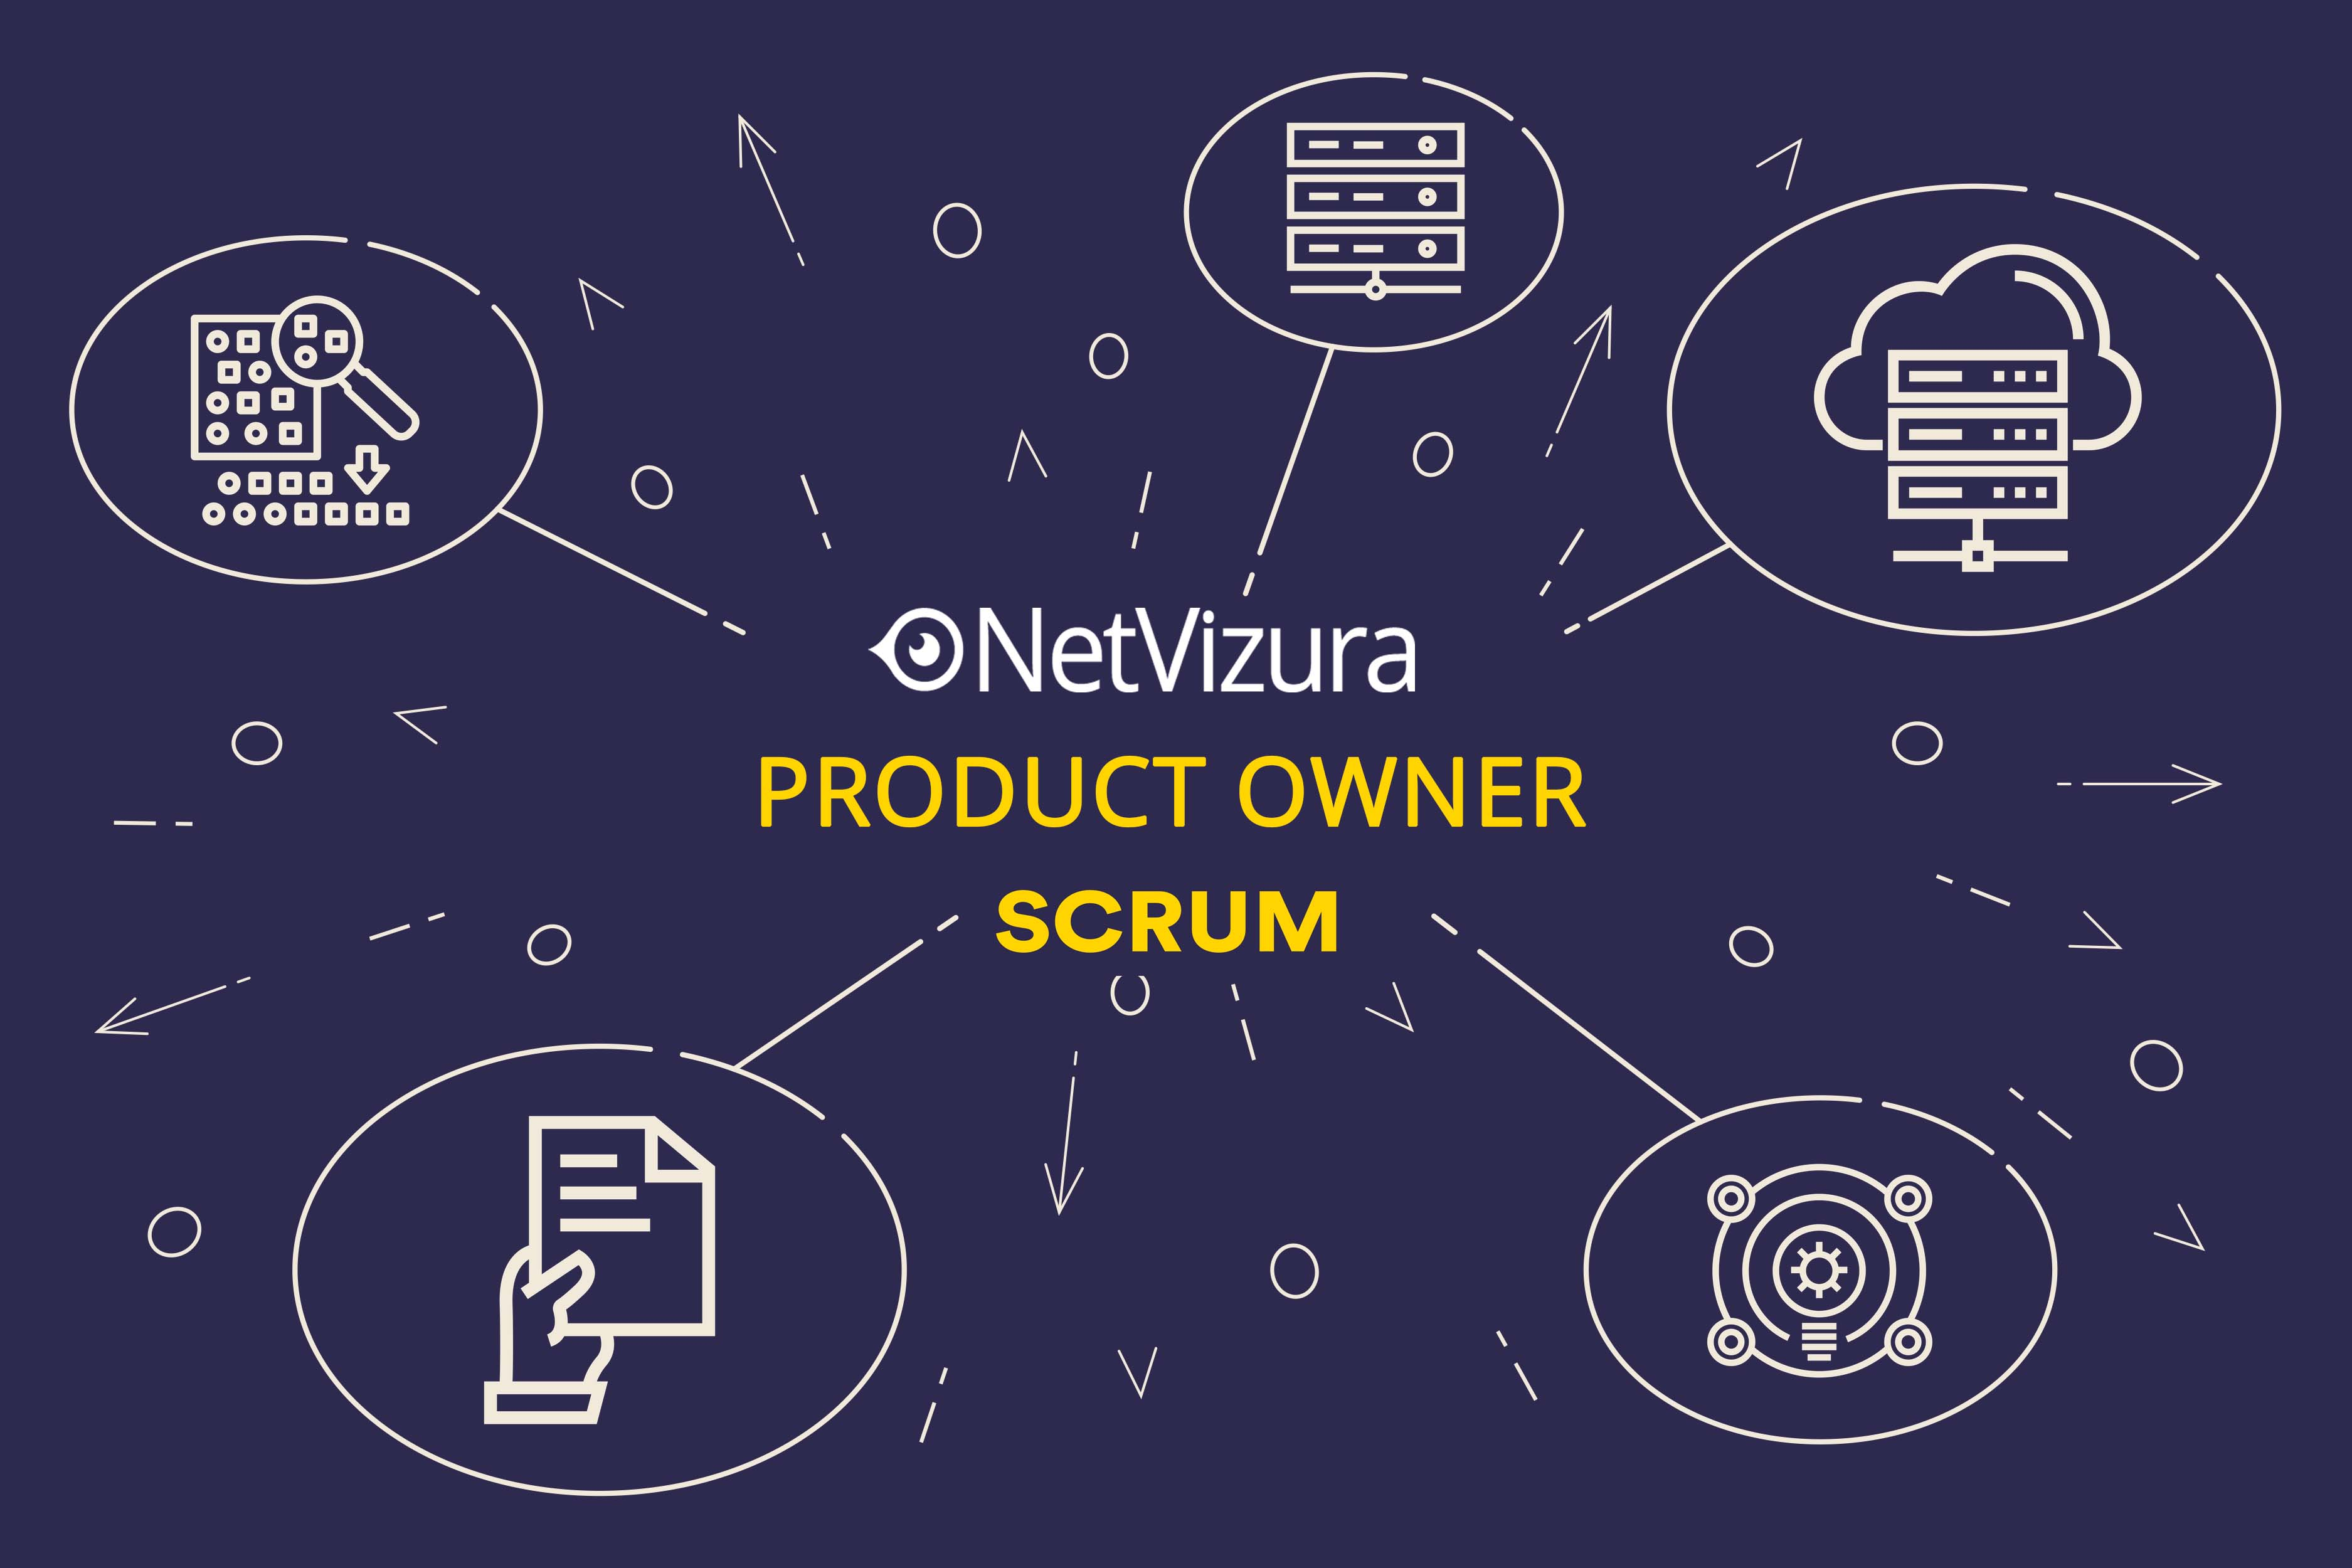 NetVizura Product owner